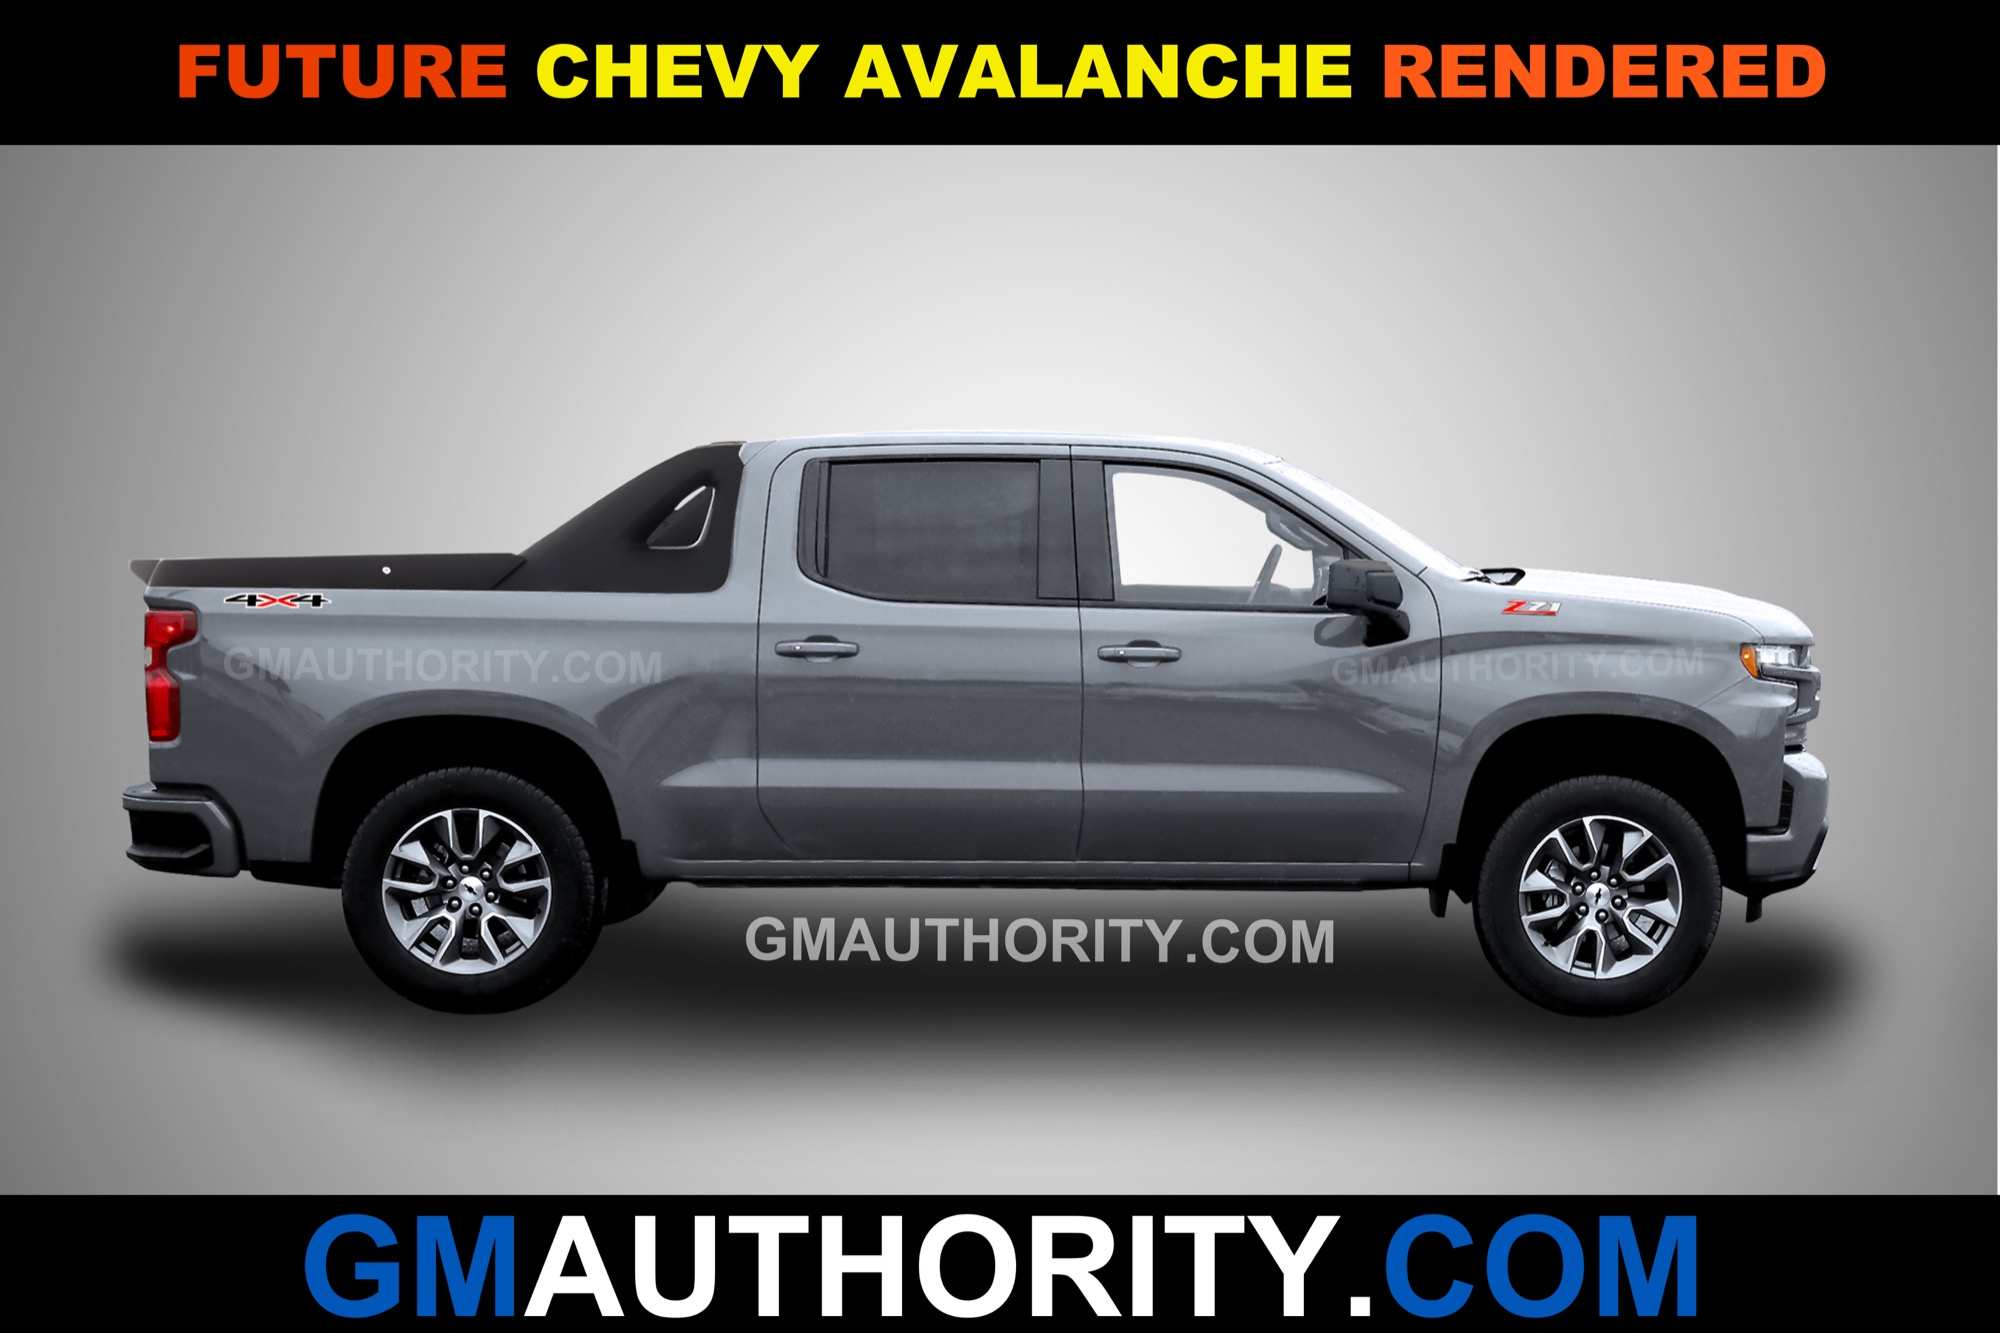 69 New Chevrolet Avalanche 2020 Release Date